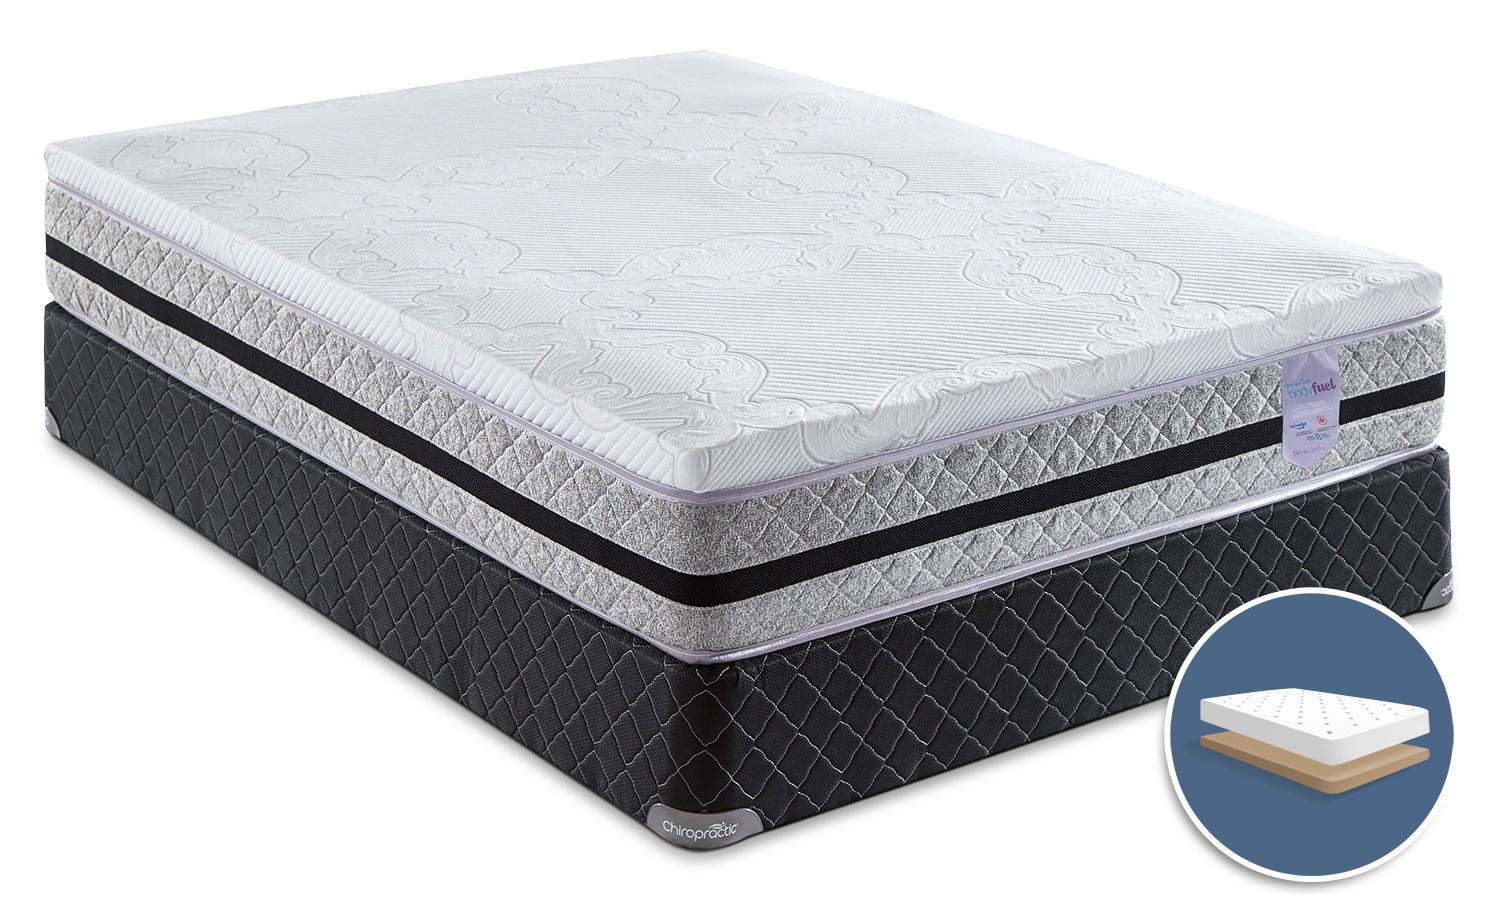 Springwall Chiropractic® Newcastle Hybrid Tight-Top Low-Profile Full Mattress Set